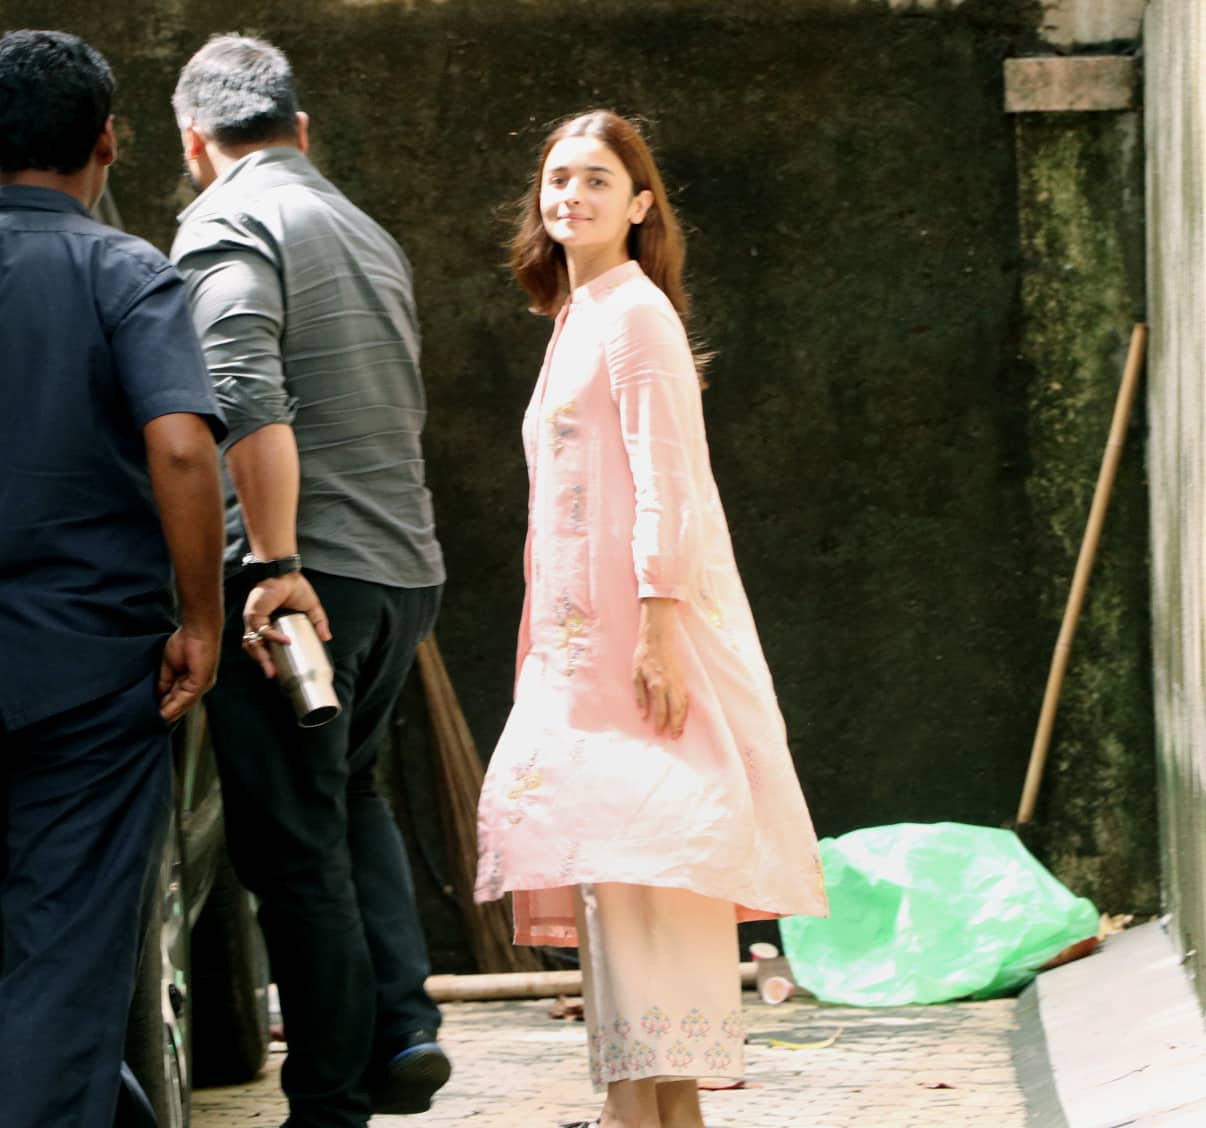 Alia was snapped in a salwar suit